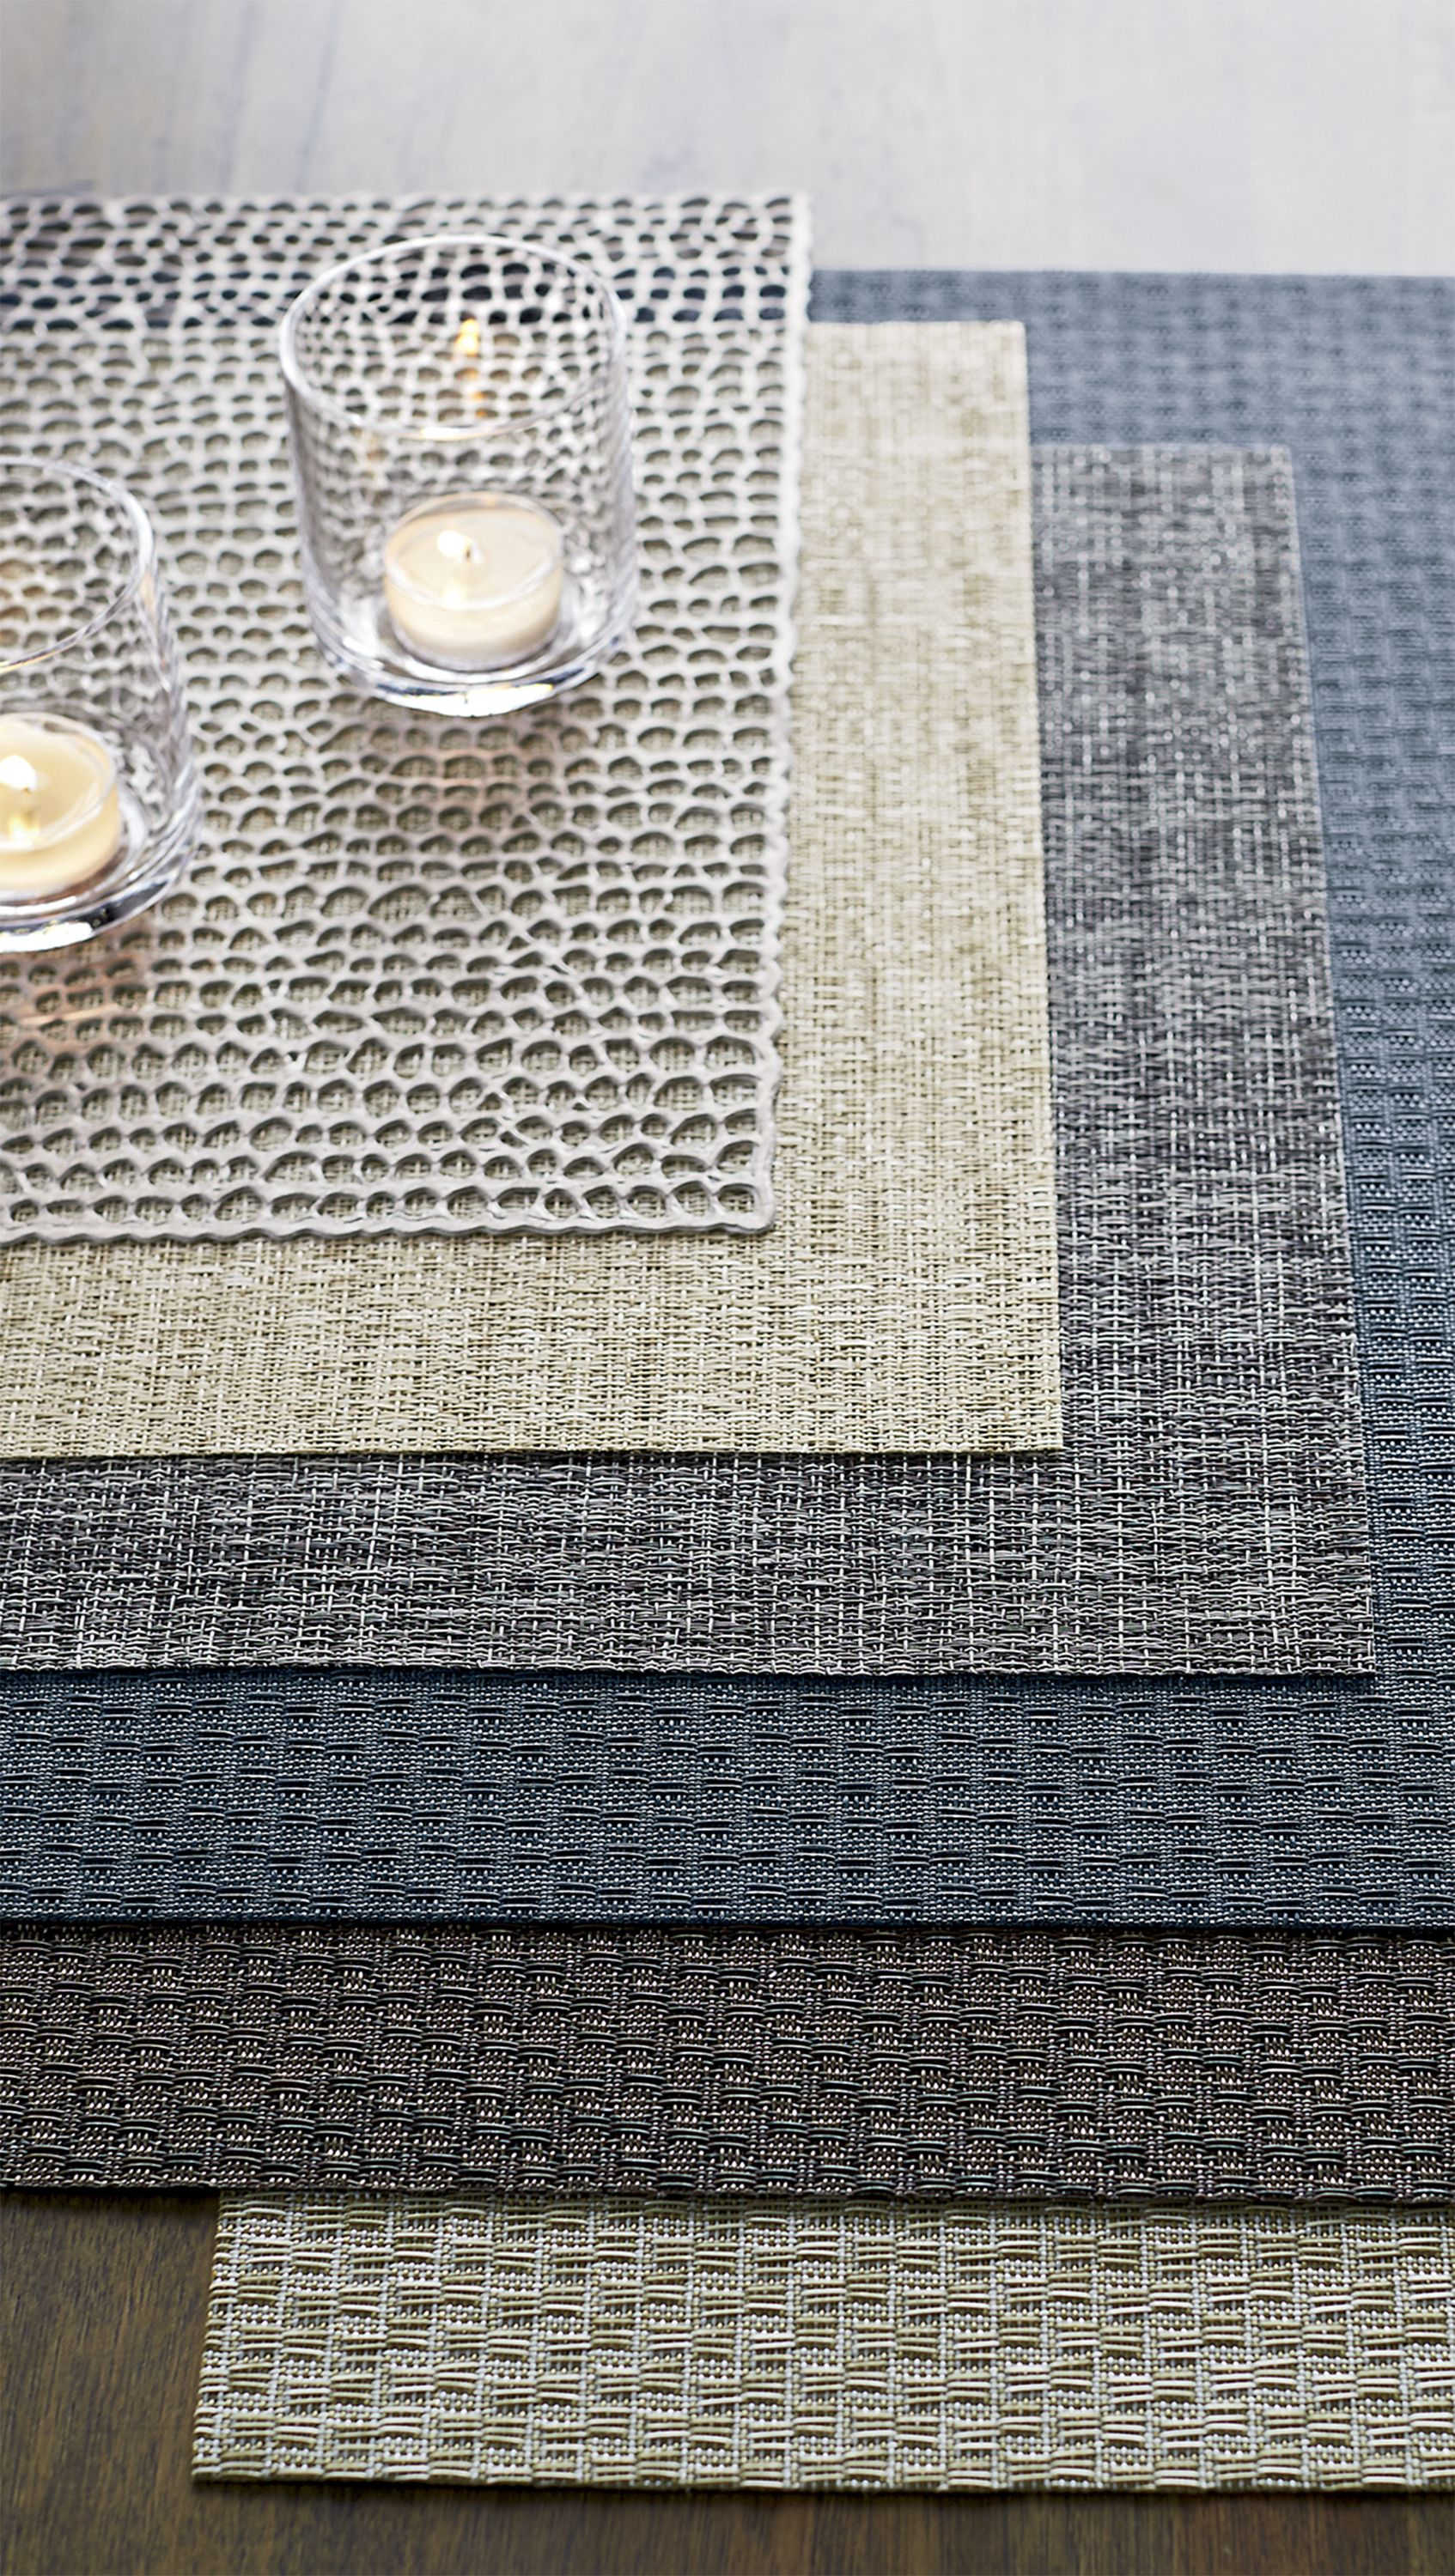 Transform Your Dining Area With Placemats And Napkins From Crate